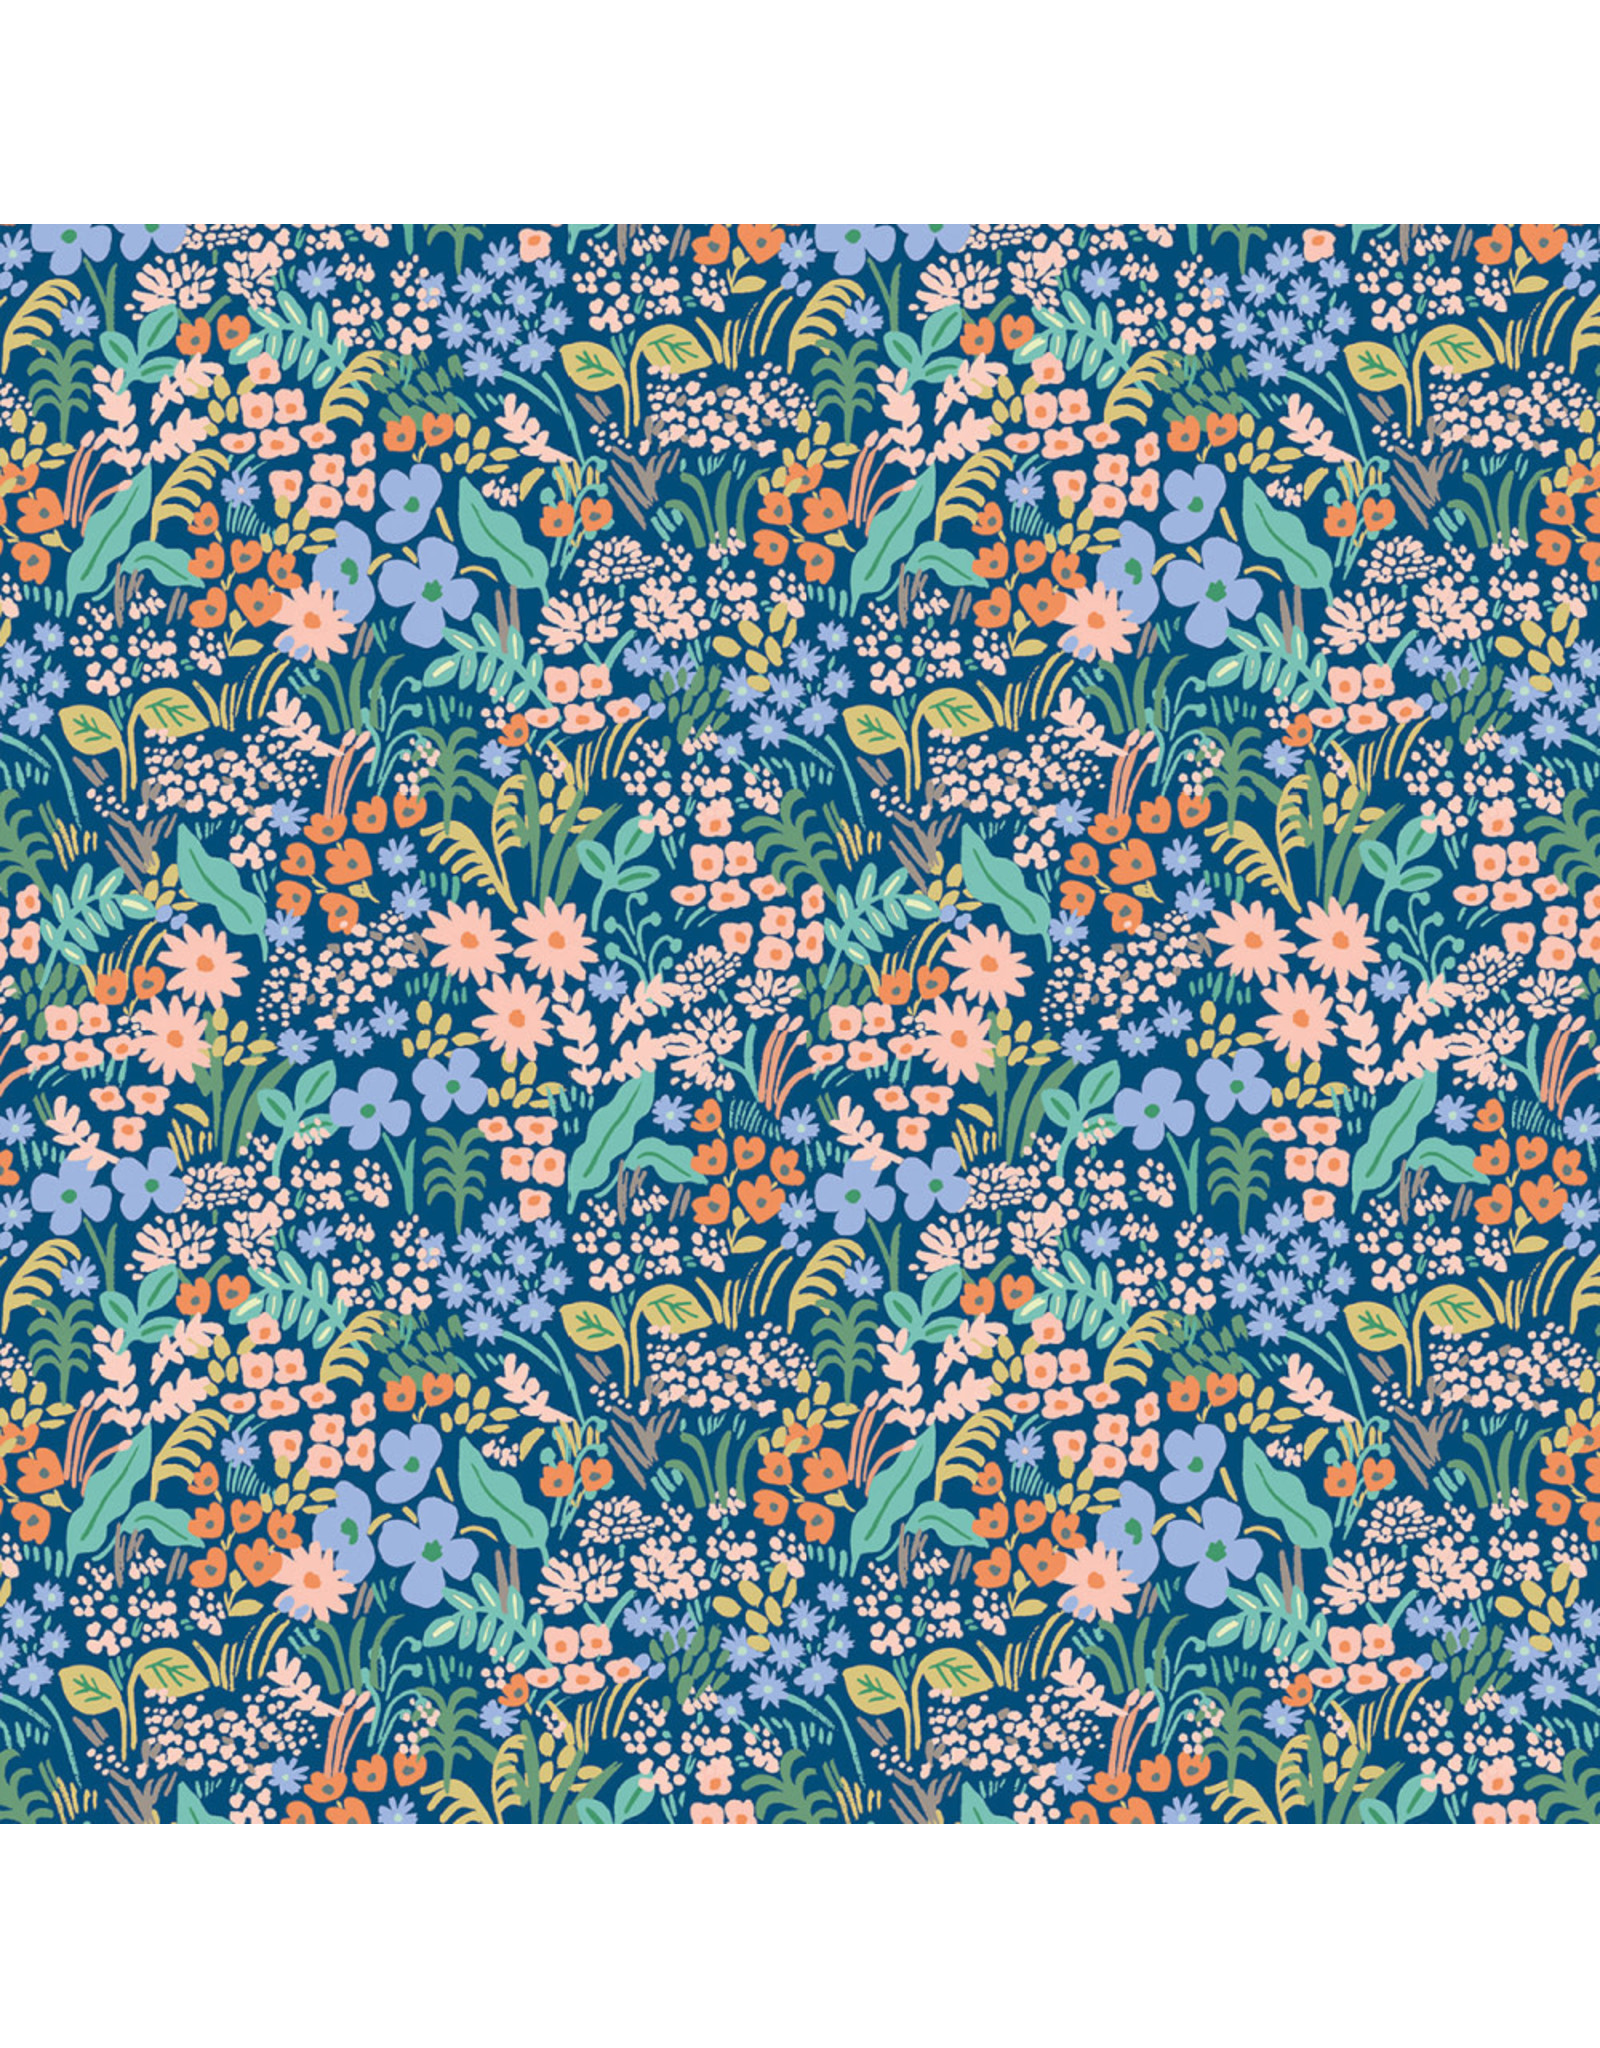 Rifle Paper Co. Meadow, Meadow in Blue, Fabric Half-Yards